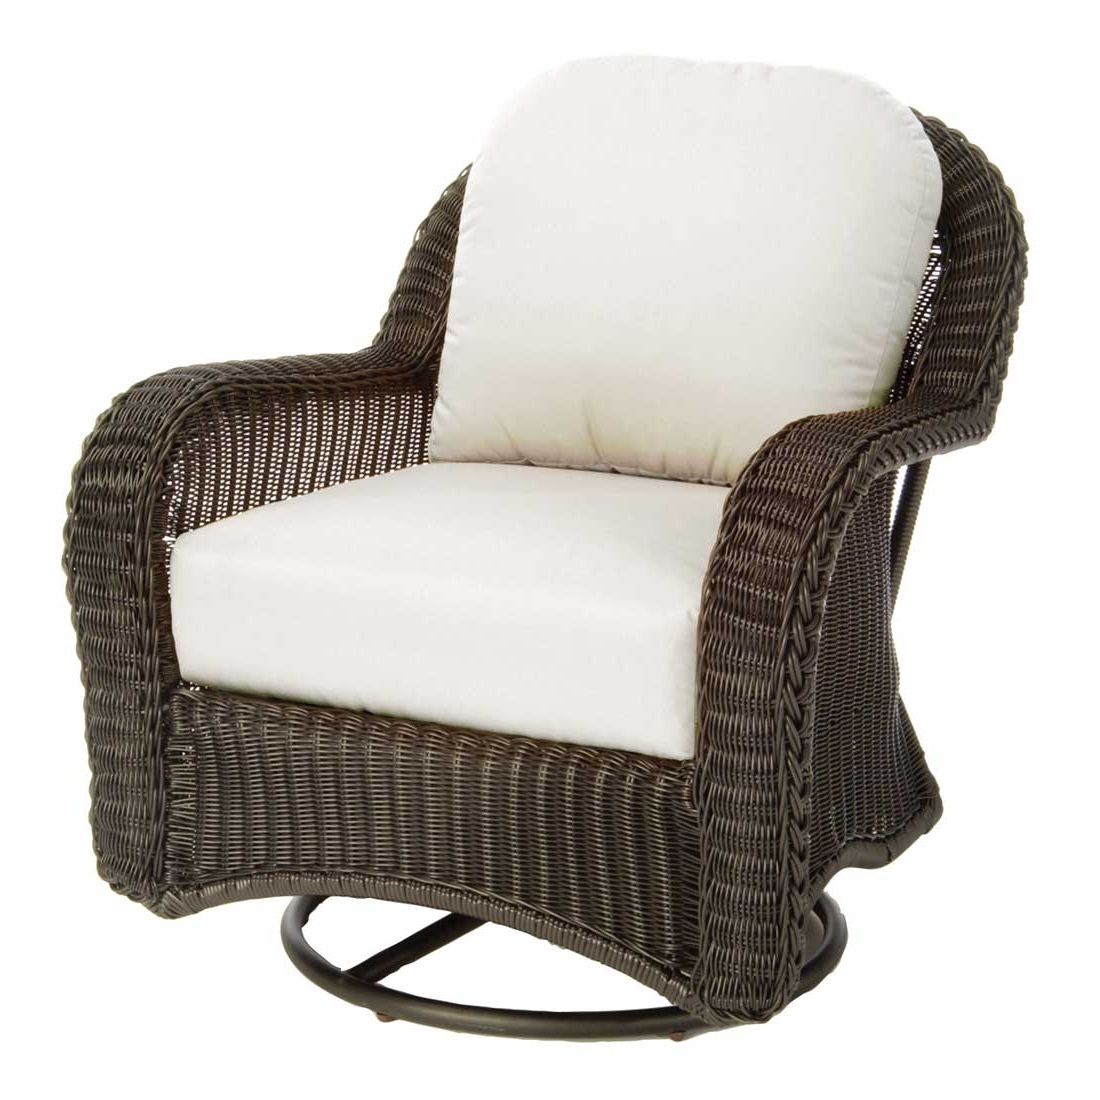 2017 Wicker Rocking Chairs And Ottoman In Classic Outdoor Wicker Swivel Glider (View 6 of 15)